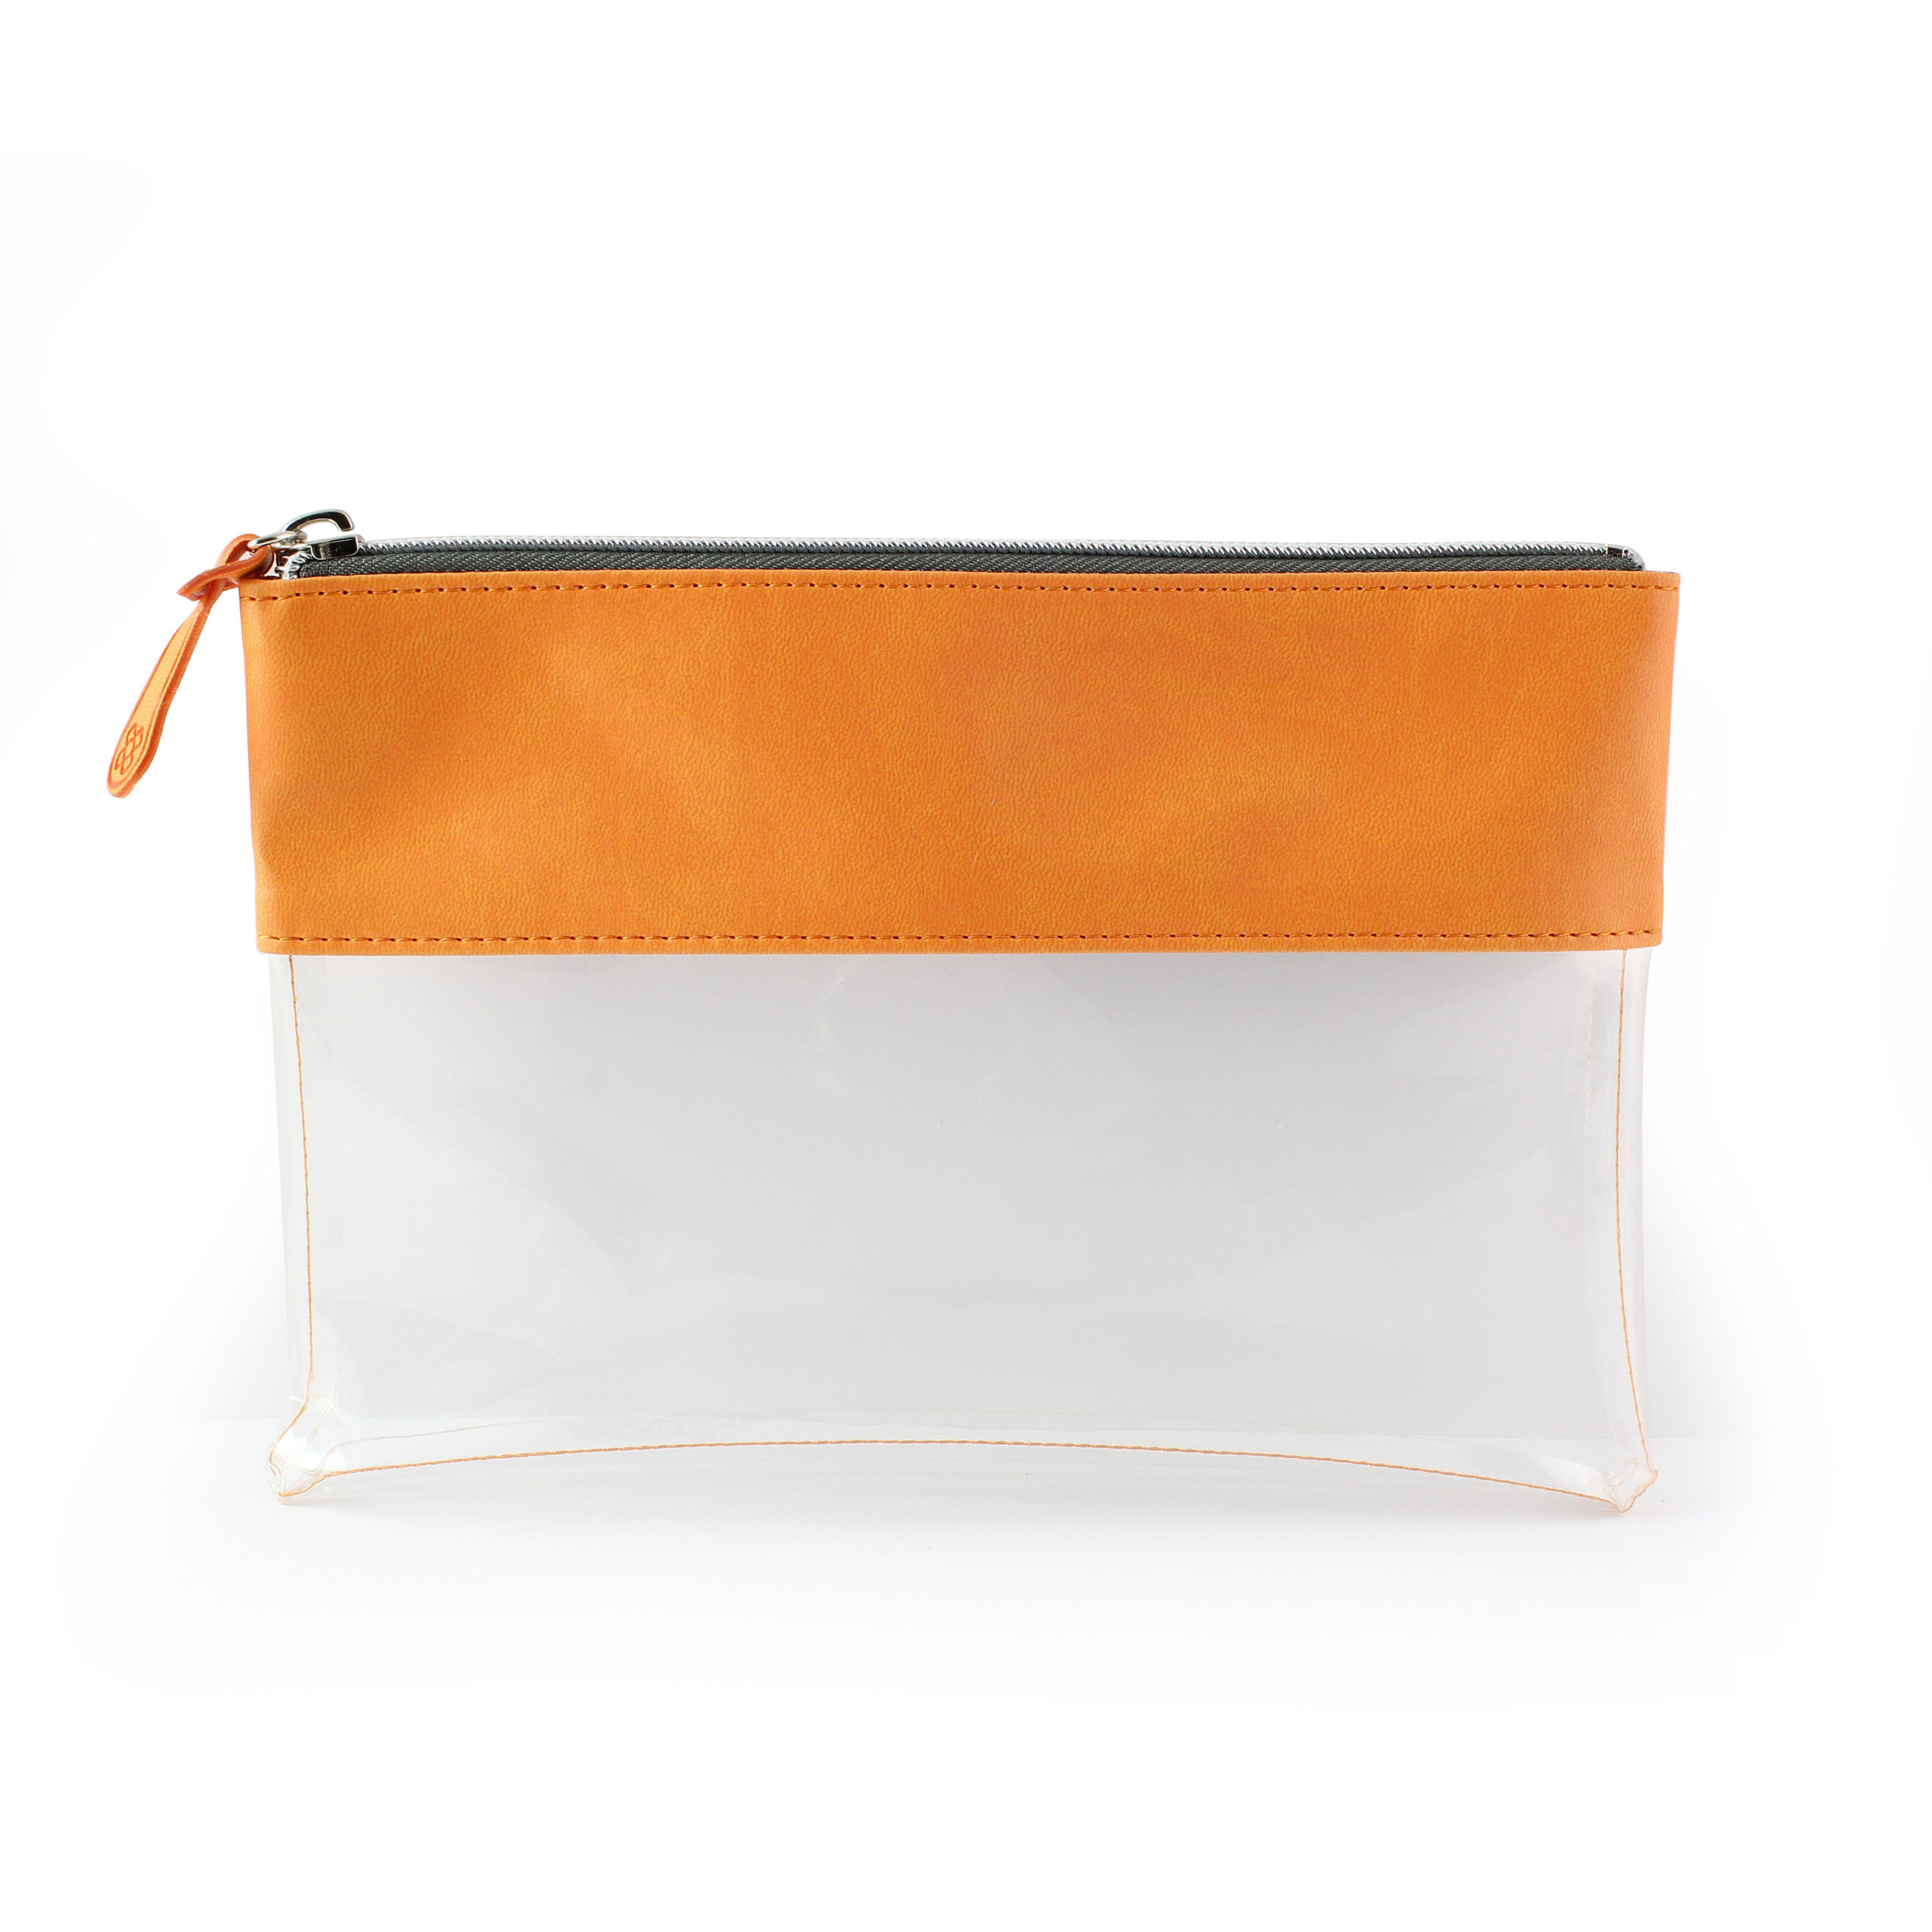 Orange Clear Pouch ideal as a travel pouch or pencil case.